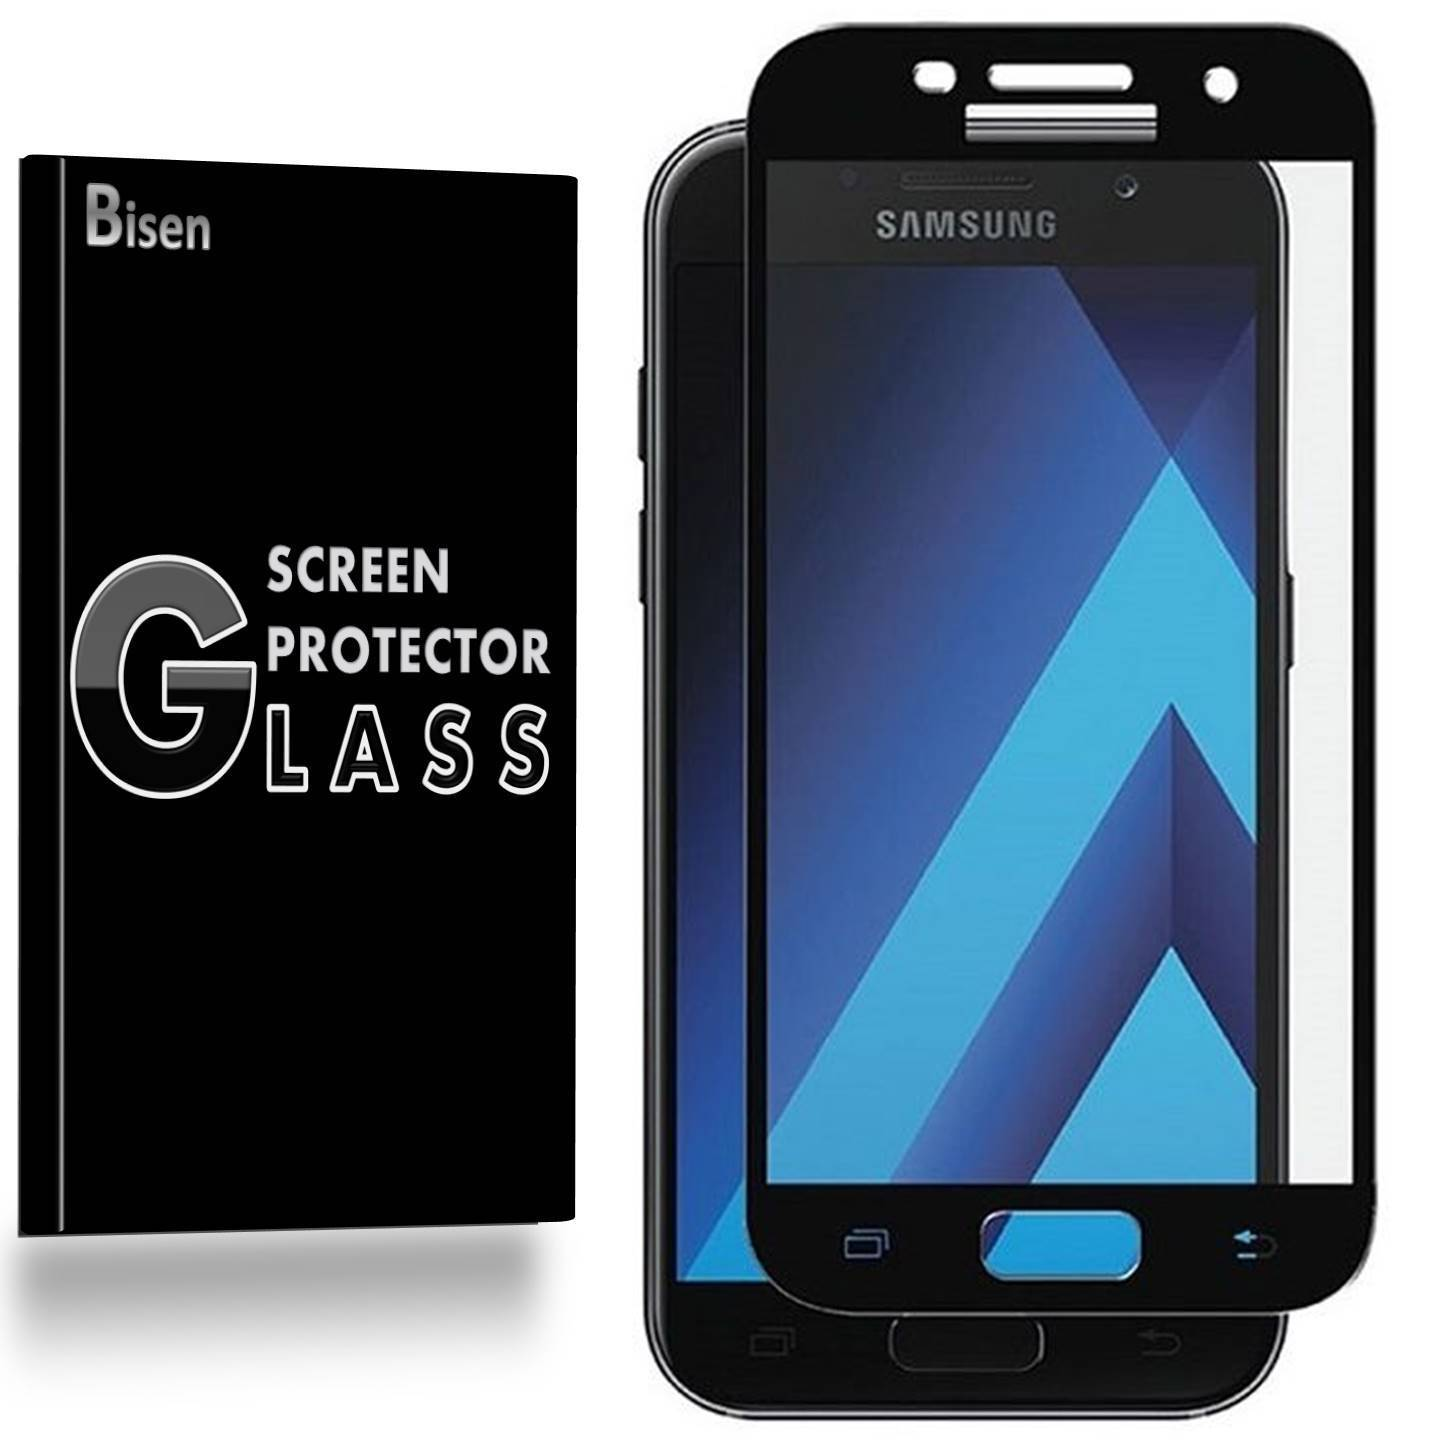 Samsung Galaxy J7 Sky Pro / Samsung Galaxy J7 (2017) [BISEN] Tempered Glass [Full Coverage] Screen Protector, Edge-To-Edge Protect, Anti-Scratch, Anti-Shock, Shatterproof, Bubble Free